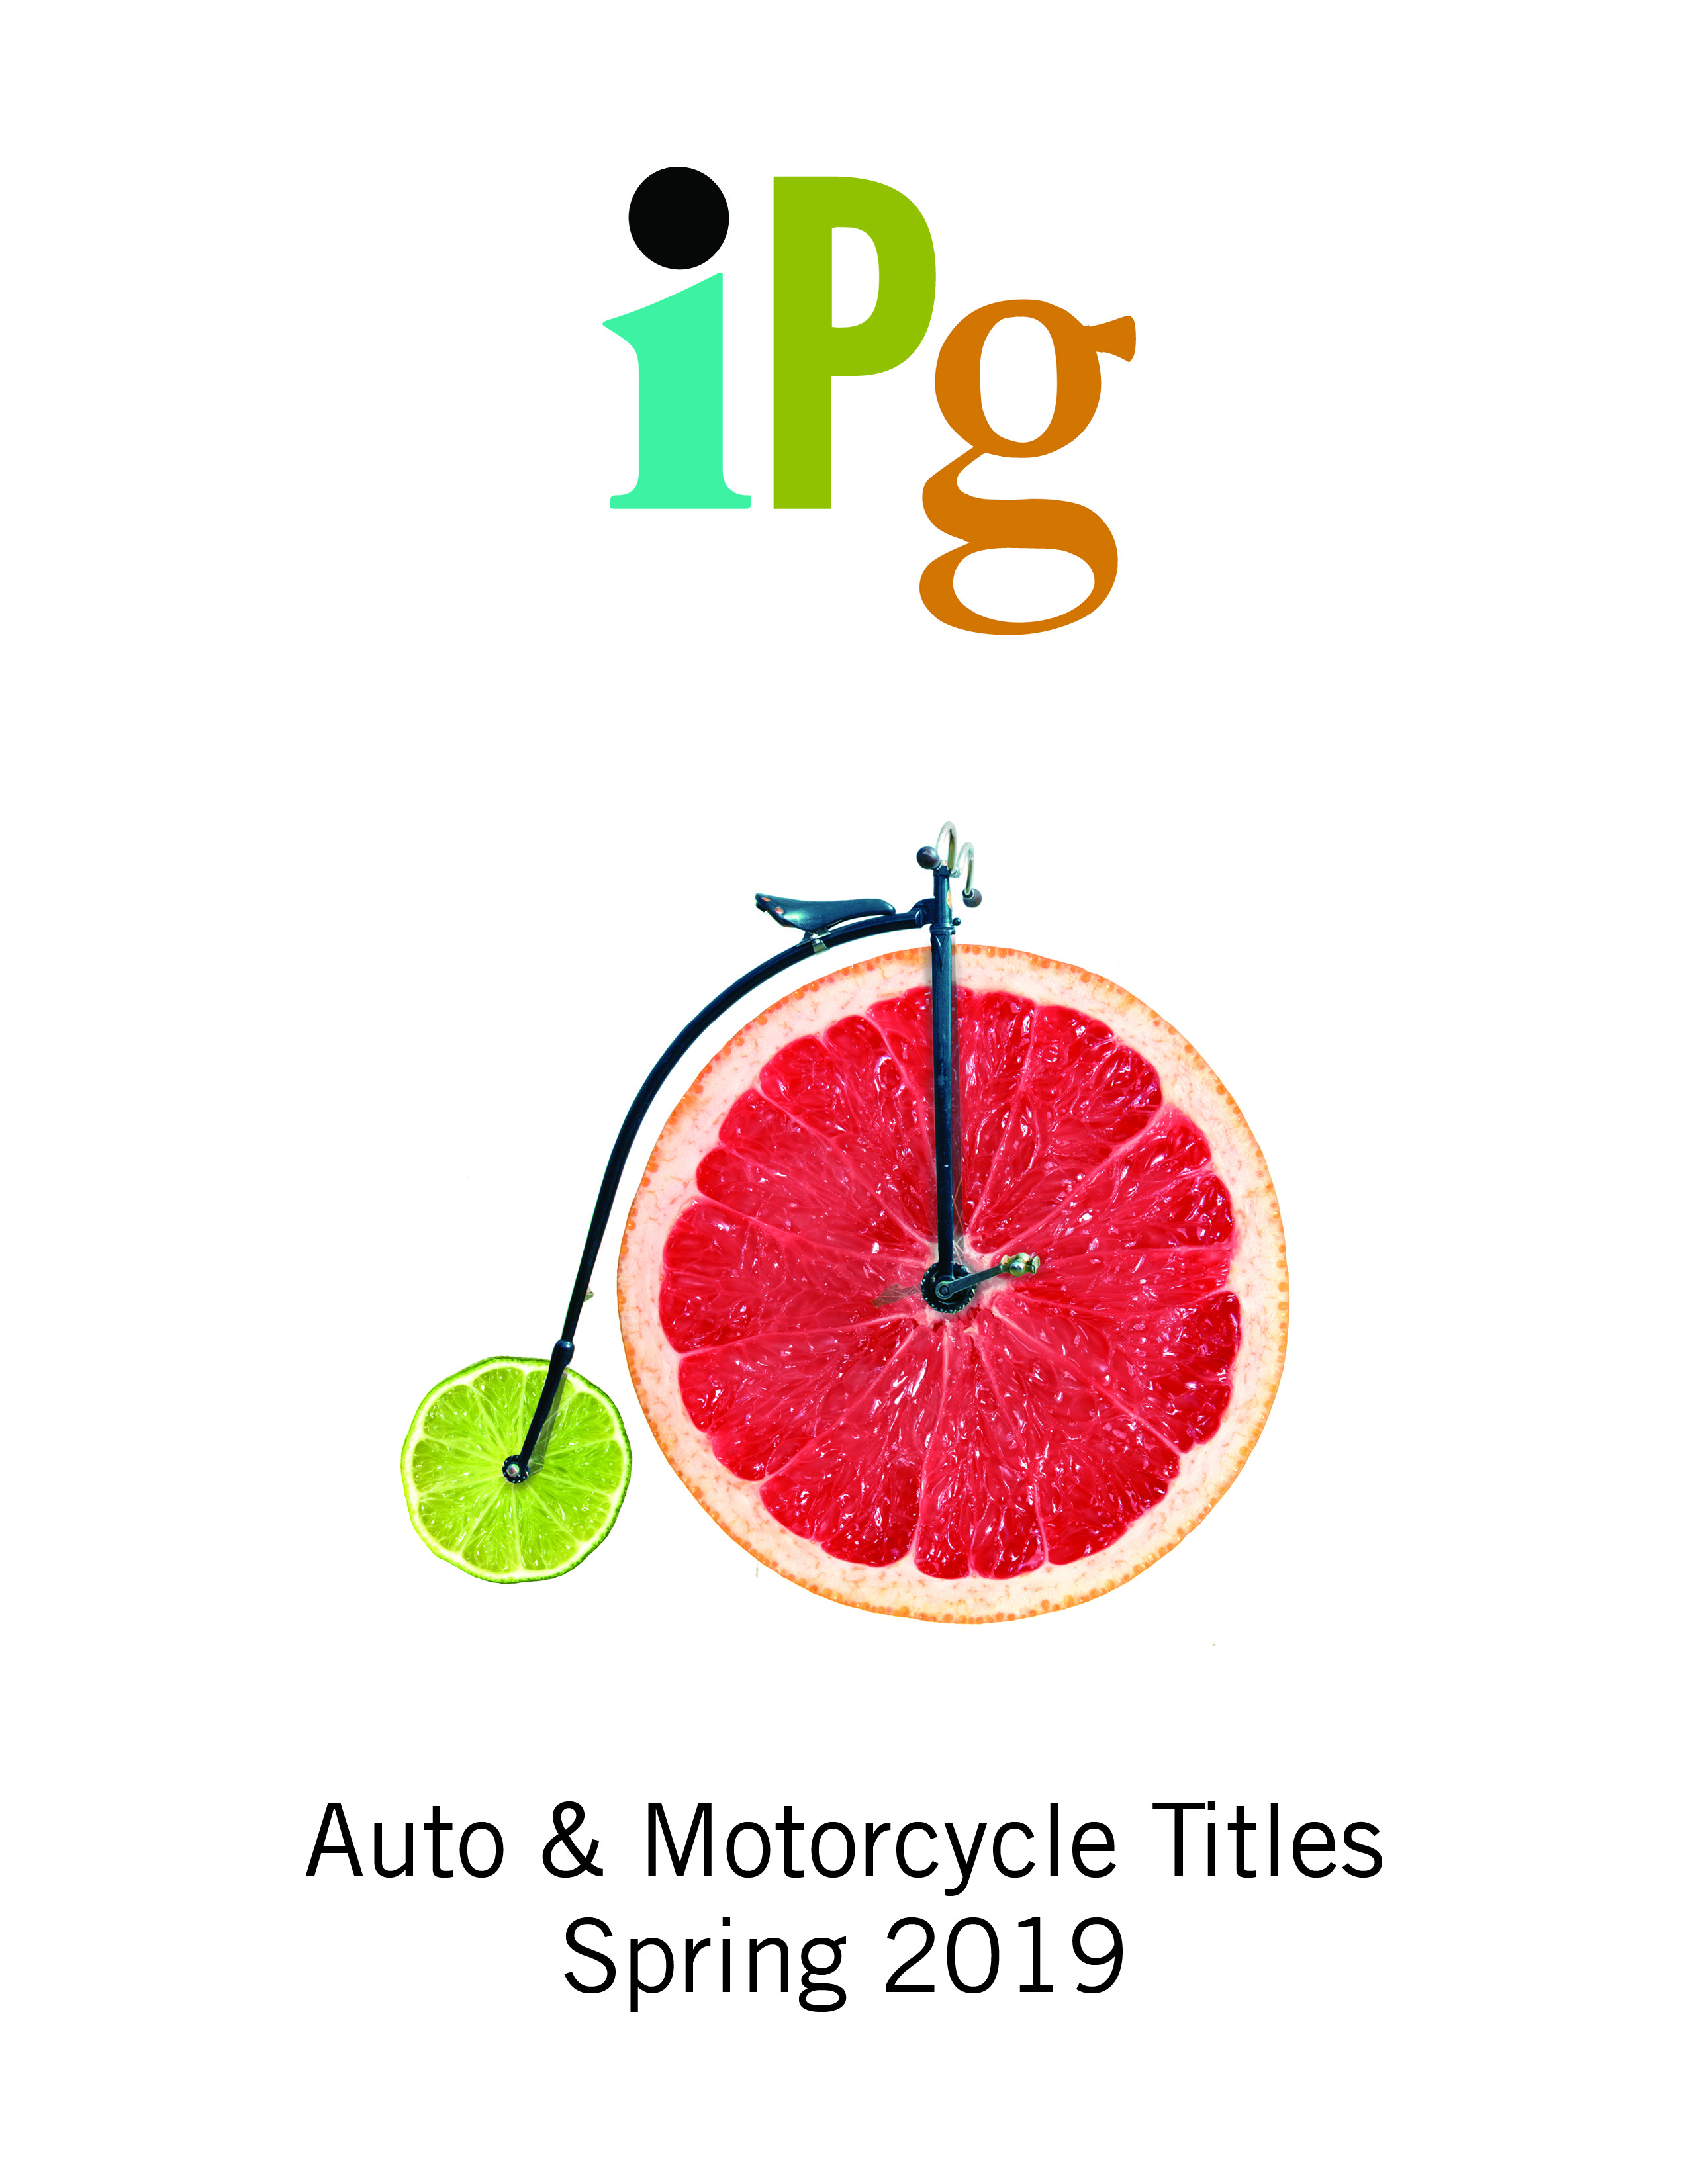 Auto & Motorcycle Titles